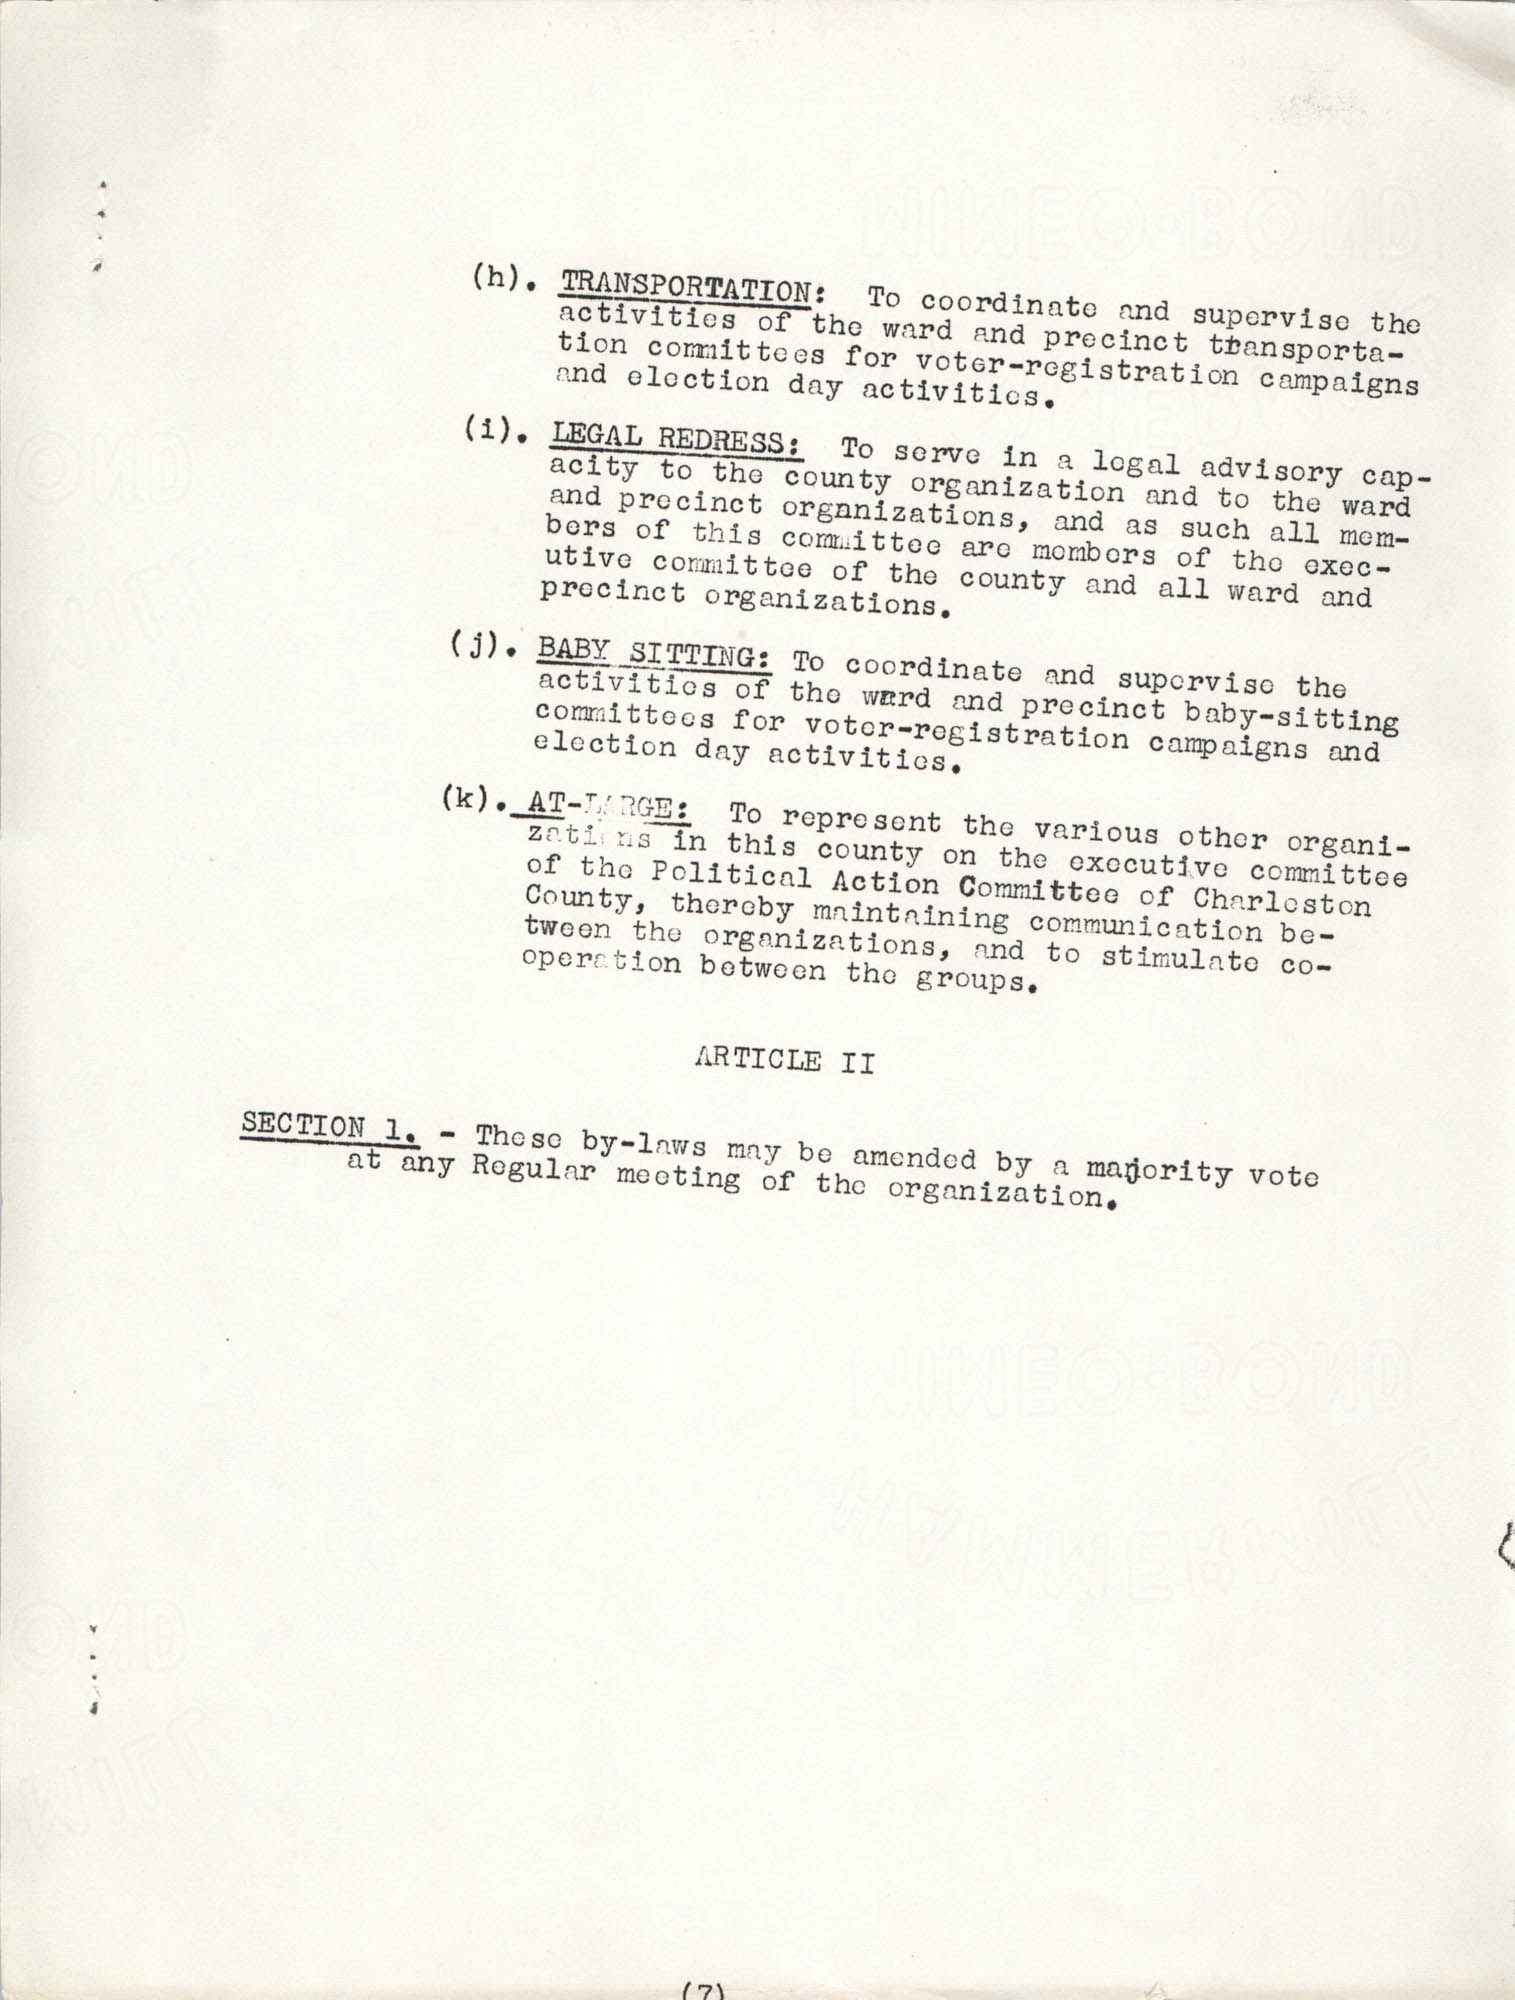 Constitution and By-Laws, Page 7